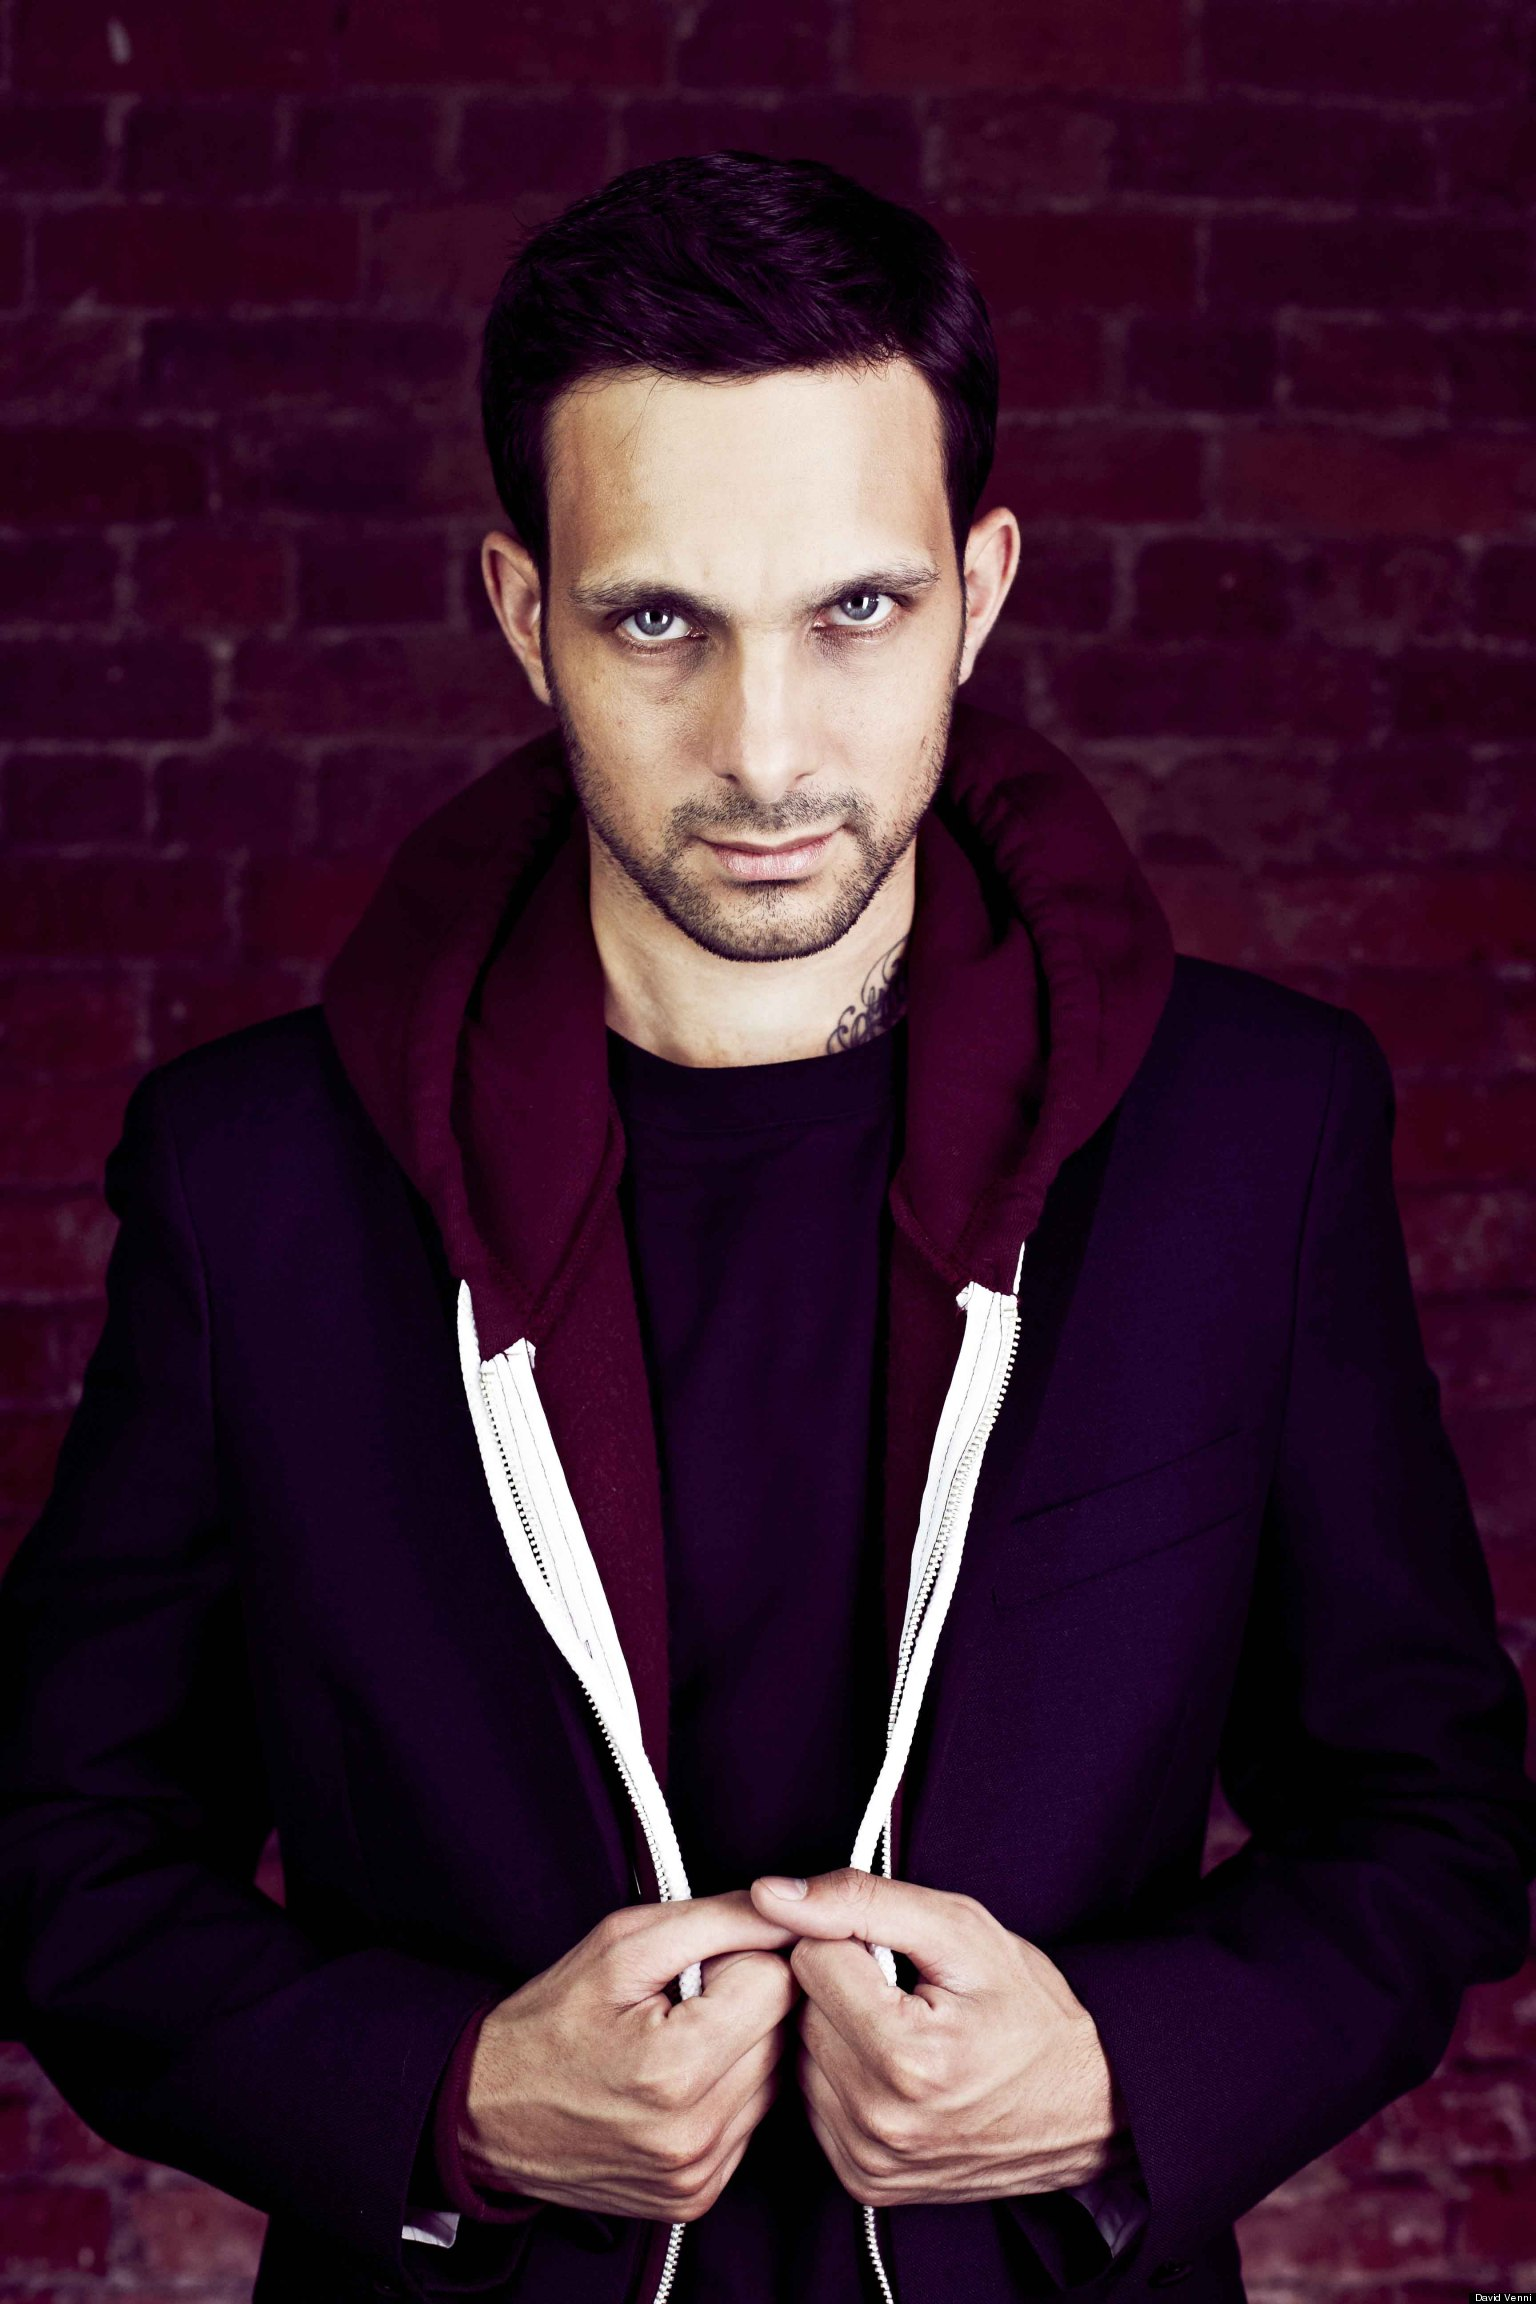 Magician From The Crystal Visions Tarot: Magician Dynamo Tells HuffPostUK Why He's Careful On